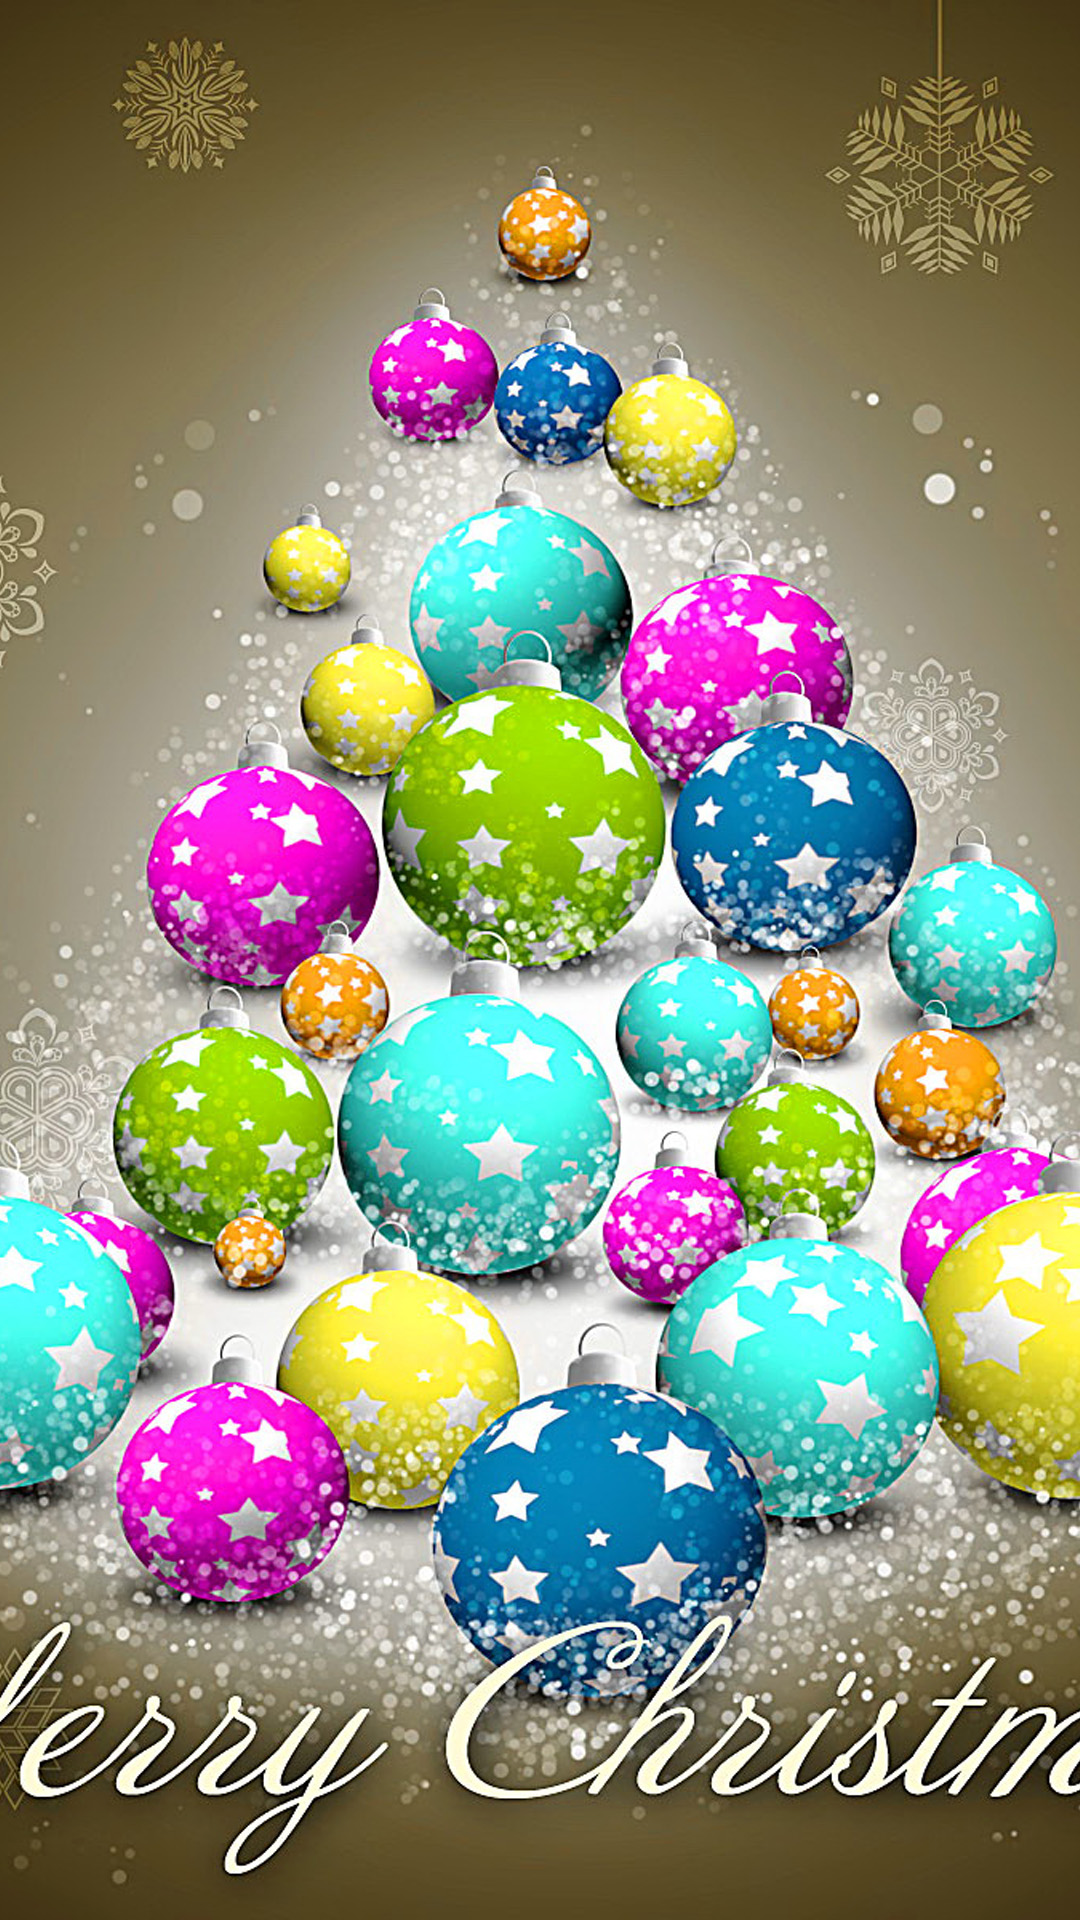 Christmas Hd Wallpaper For Android.Colorful Merry Christmas Android Wallpaper Android Hd